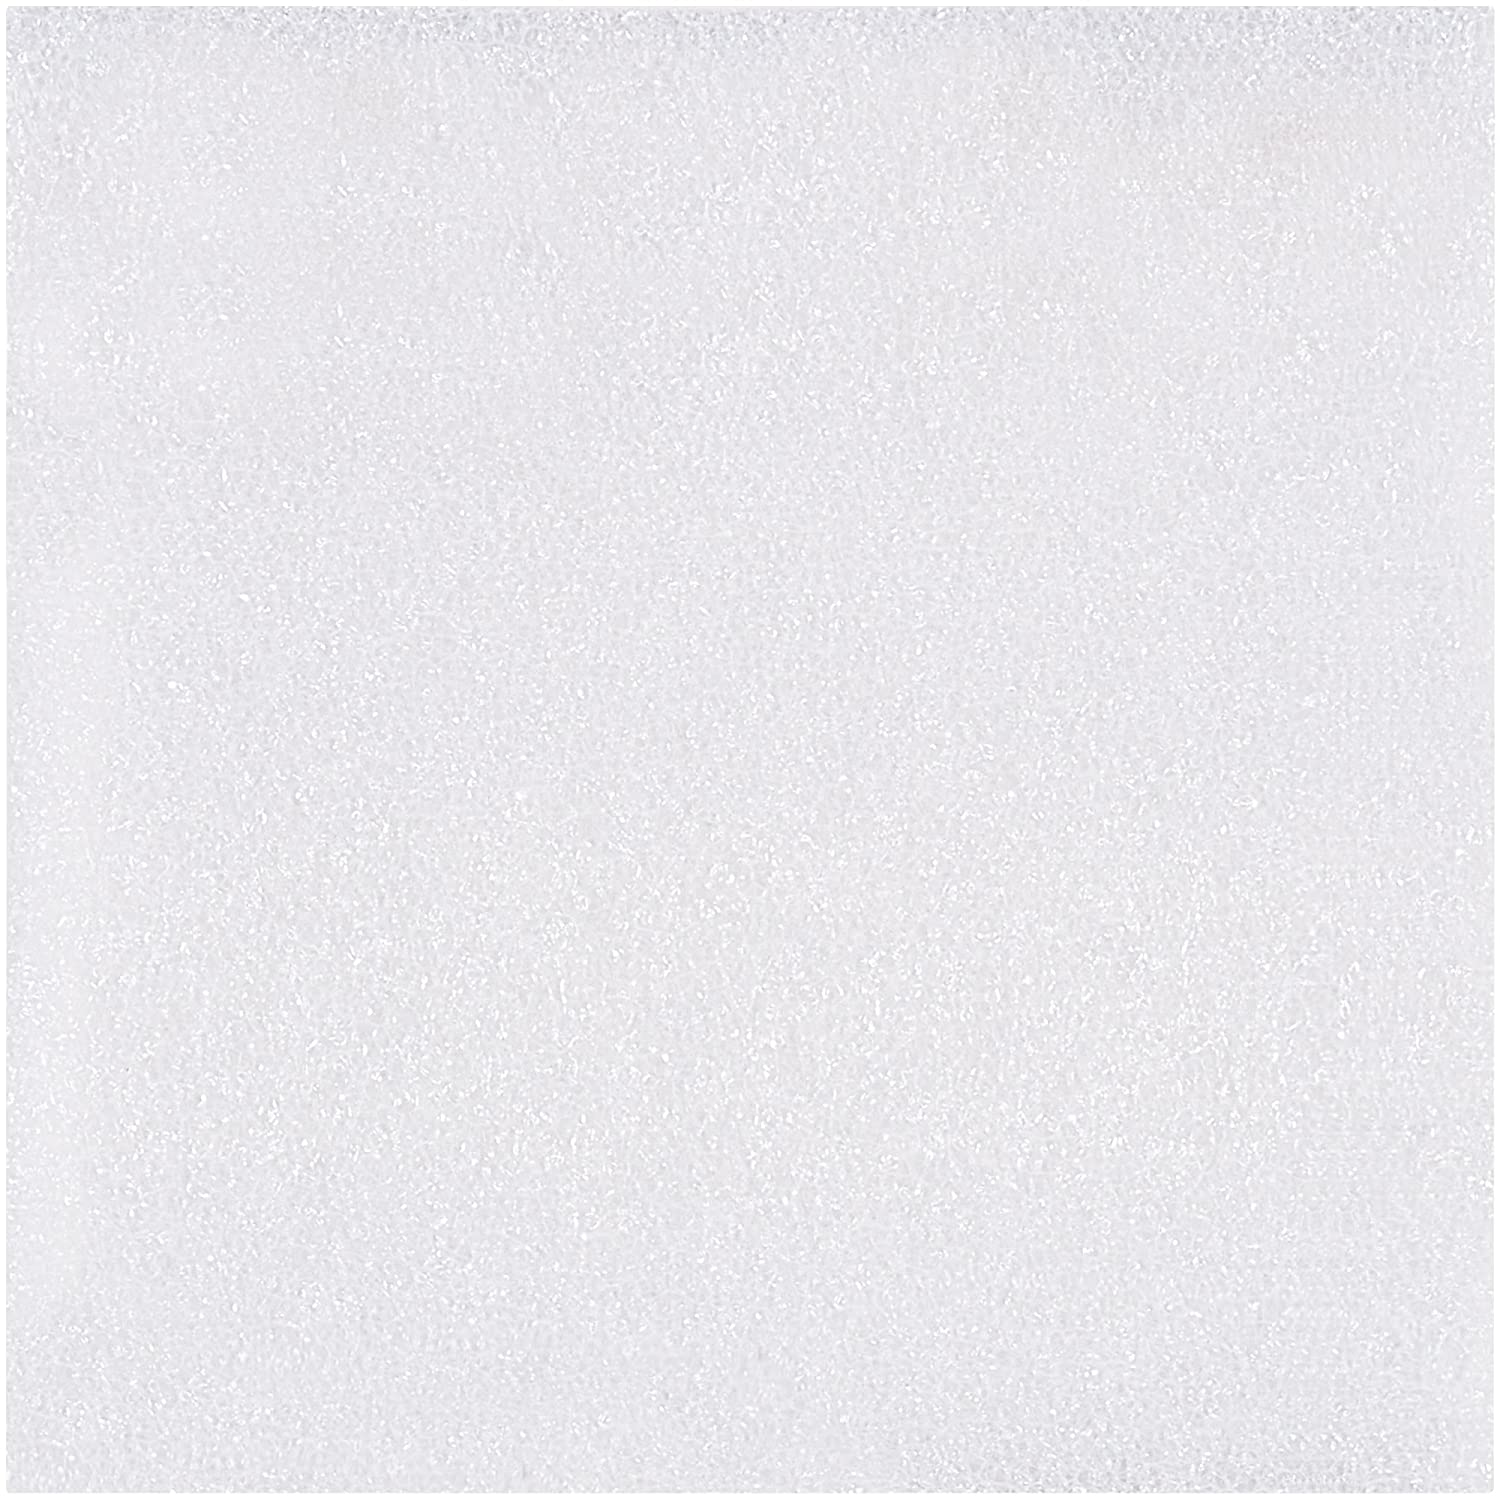 Air Foam Sheets White 8 x 8 1800//Case